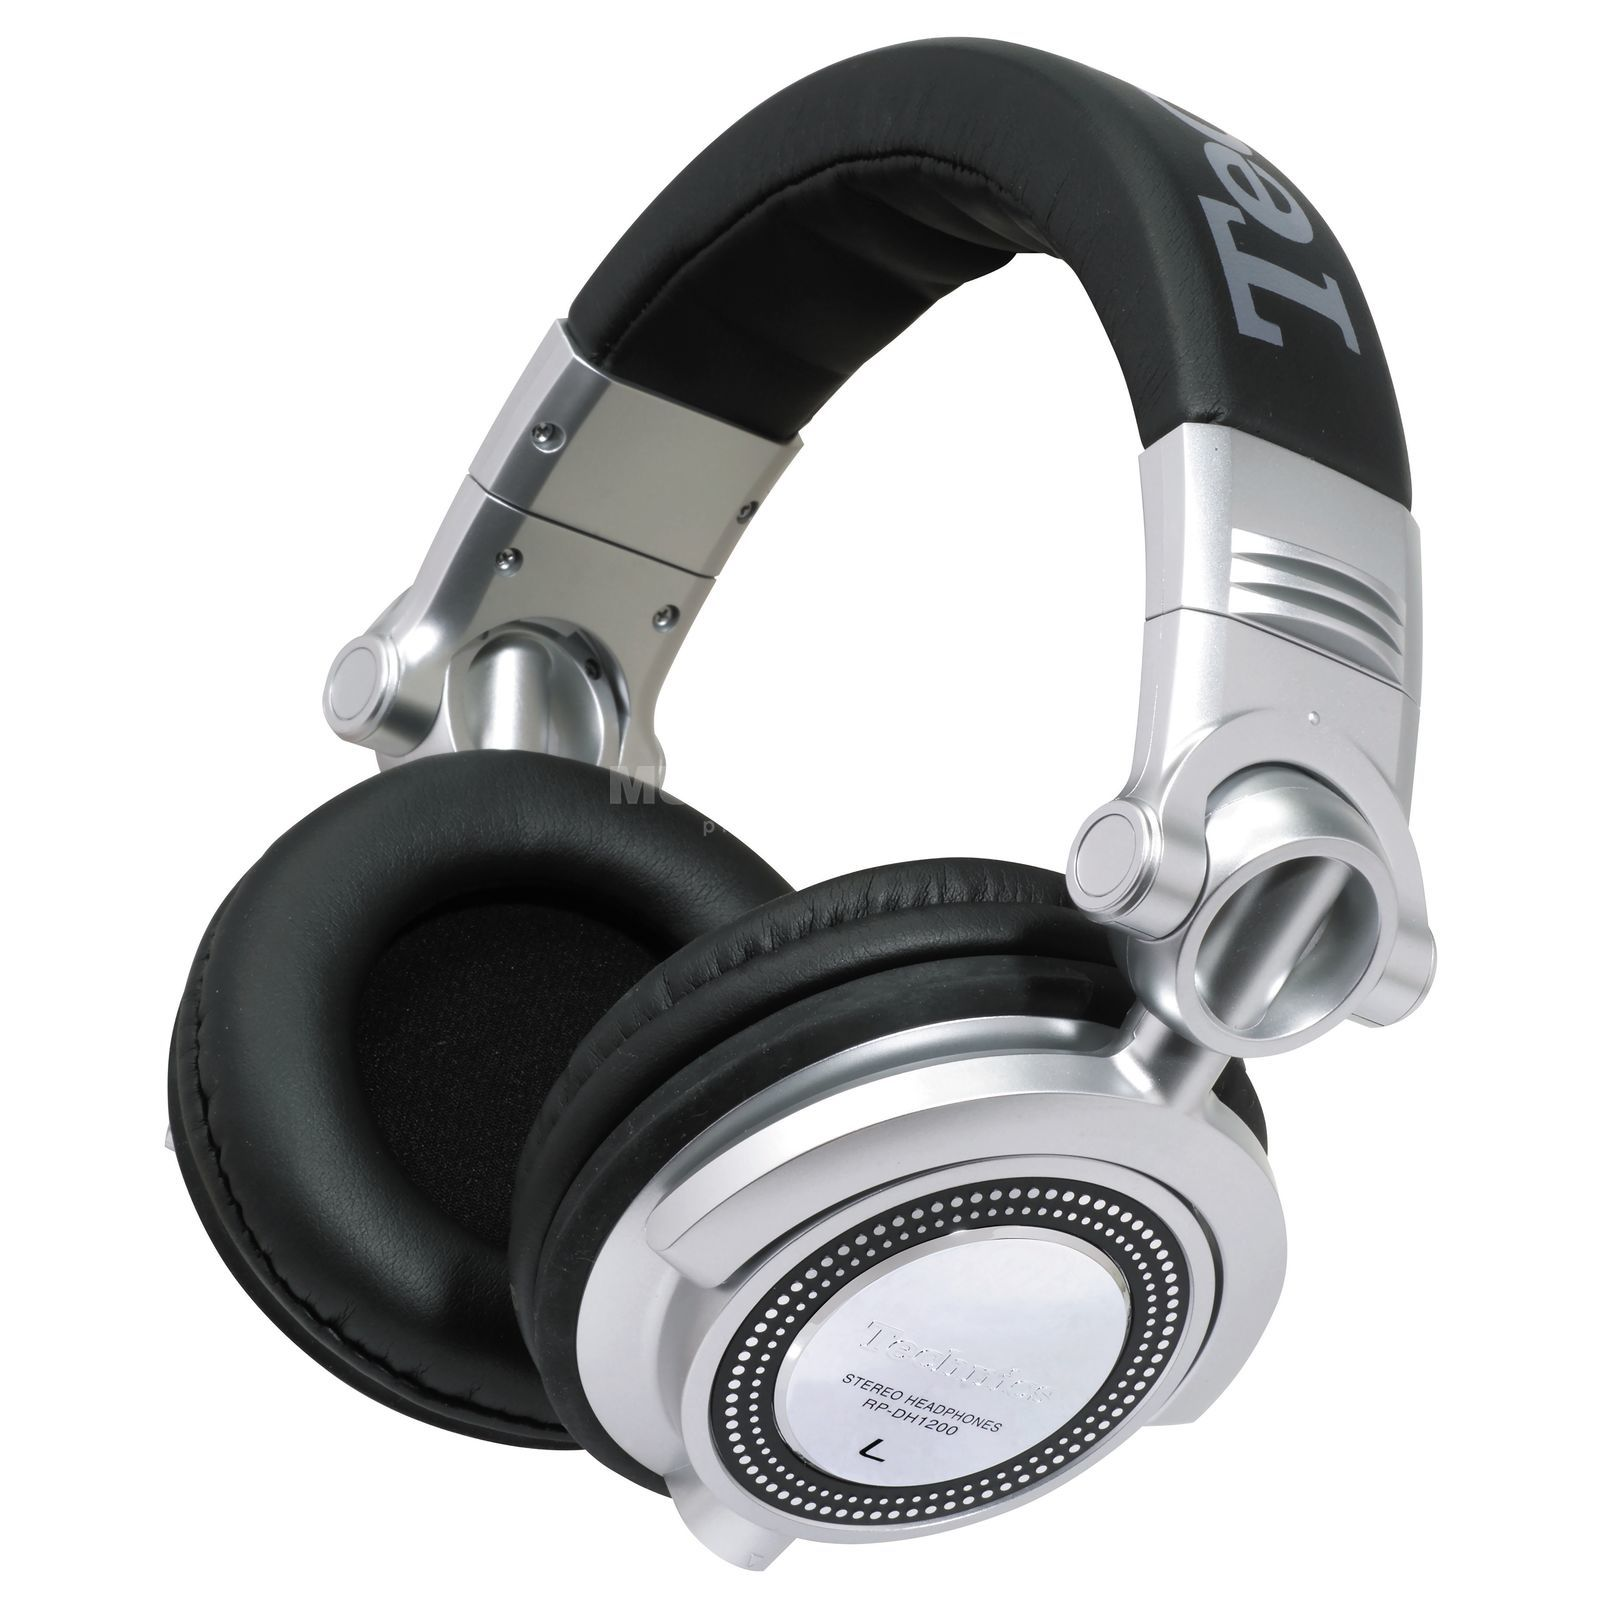 Technics RP-DH1200 DJ Headphones closed Immagine prodotto